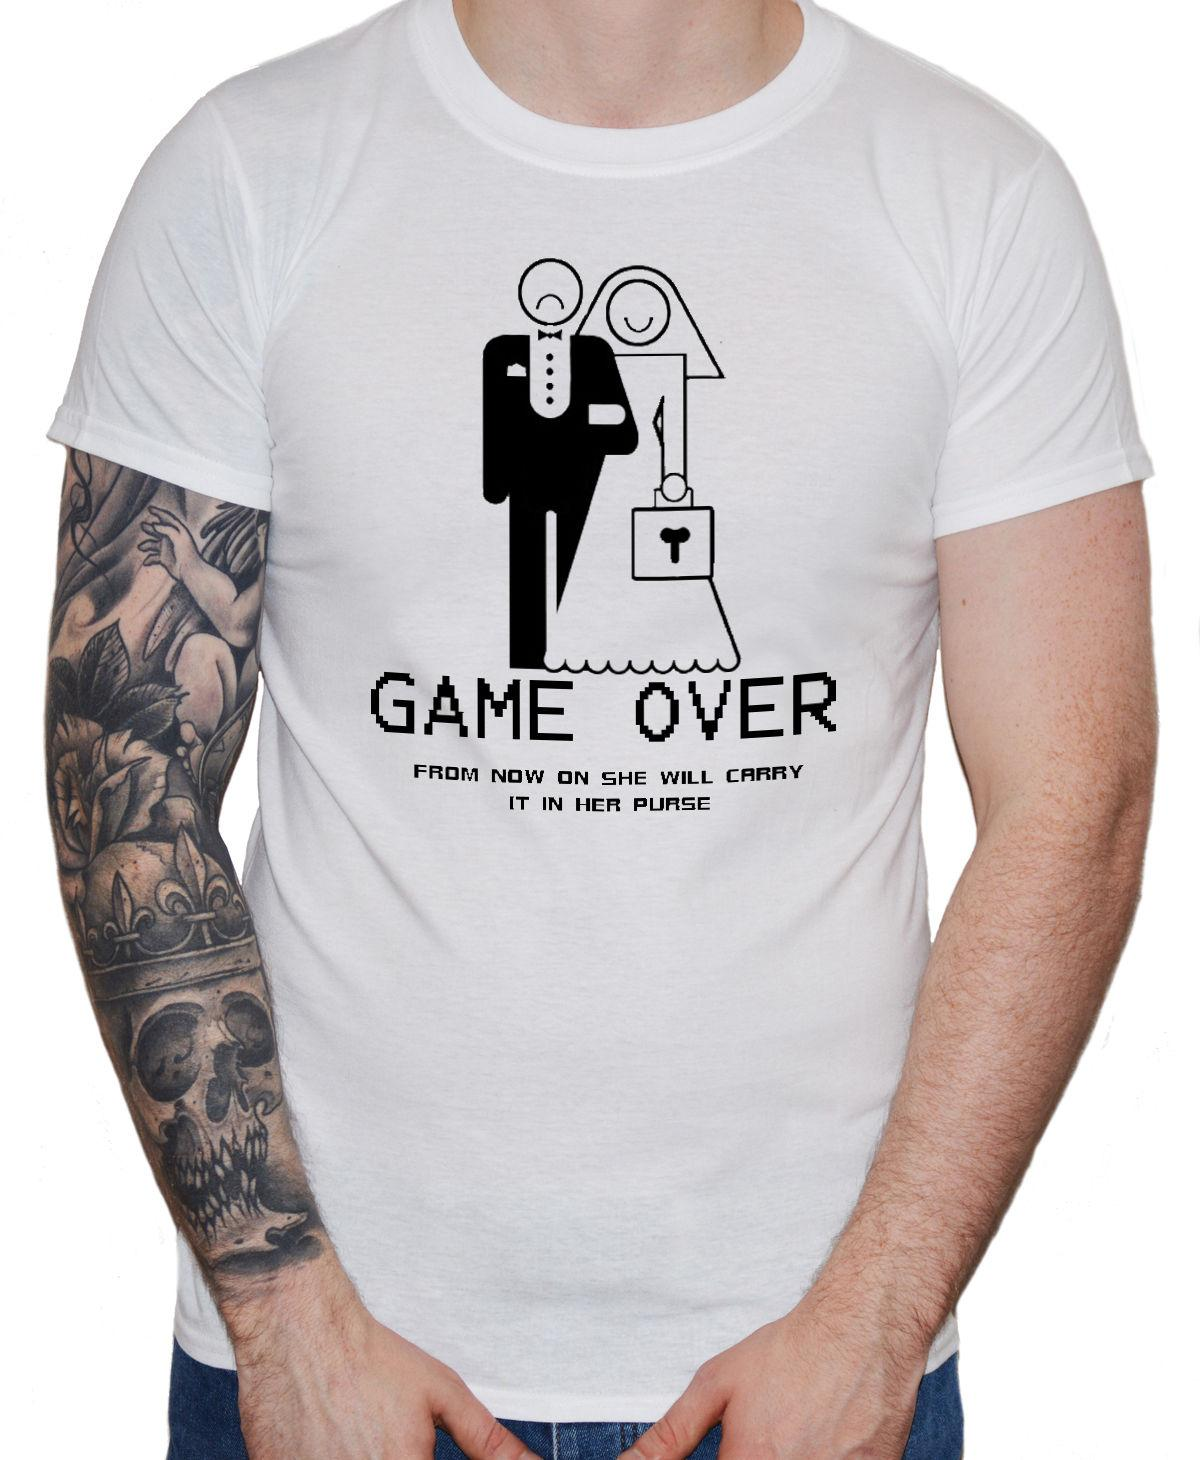 Funny Wedding Gifts For Groom: Funny Wedding T Shirt Game Over Guys Mens Groom Stag Party